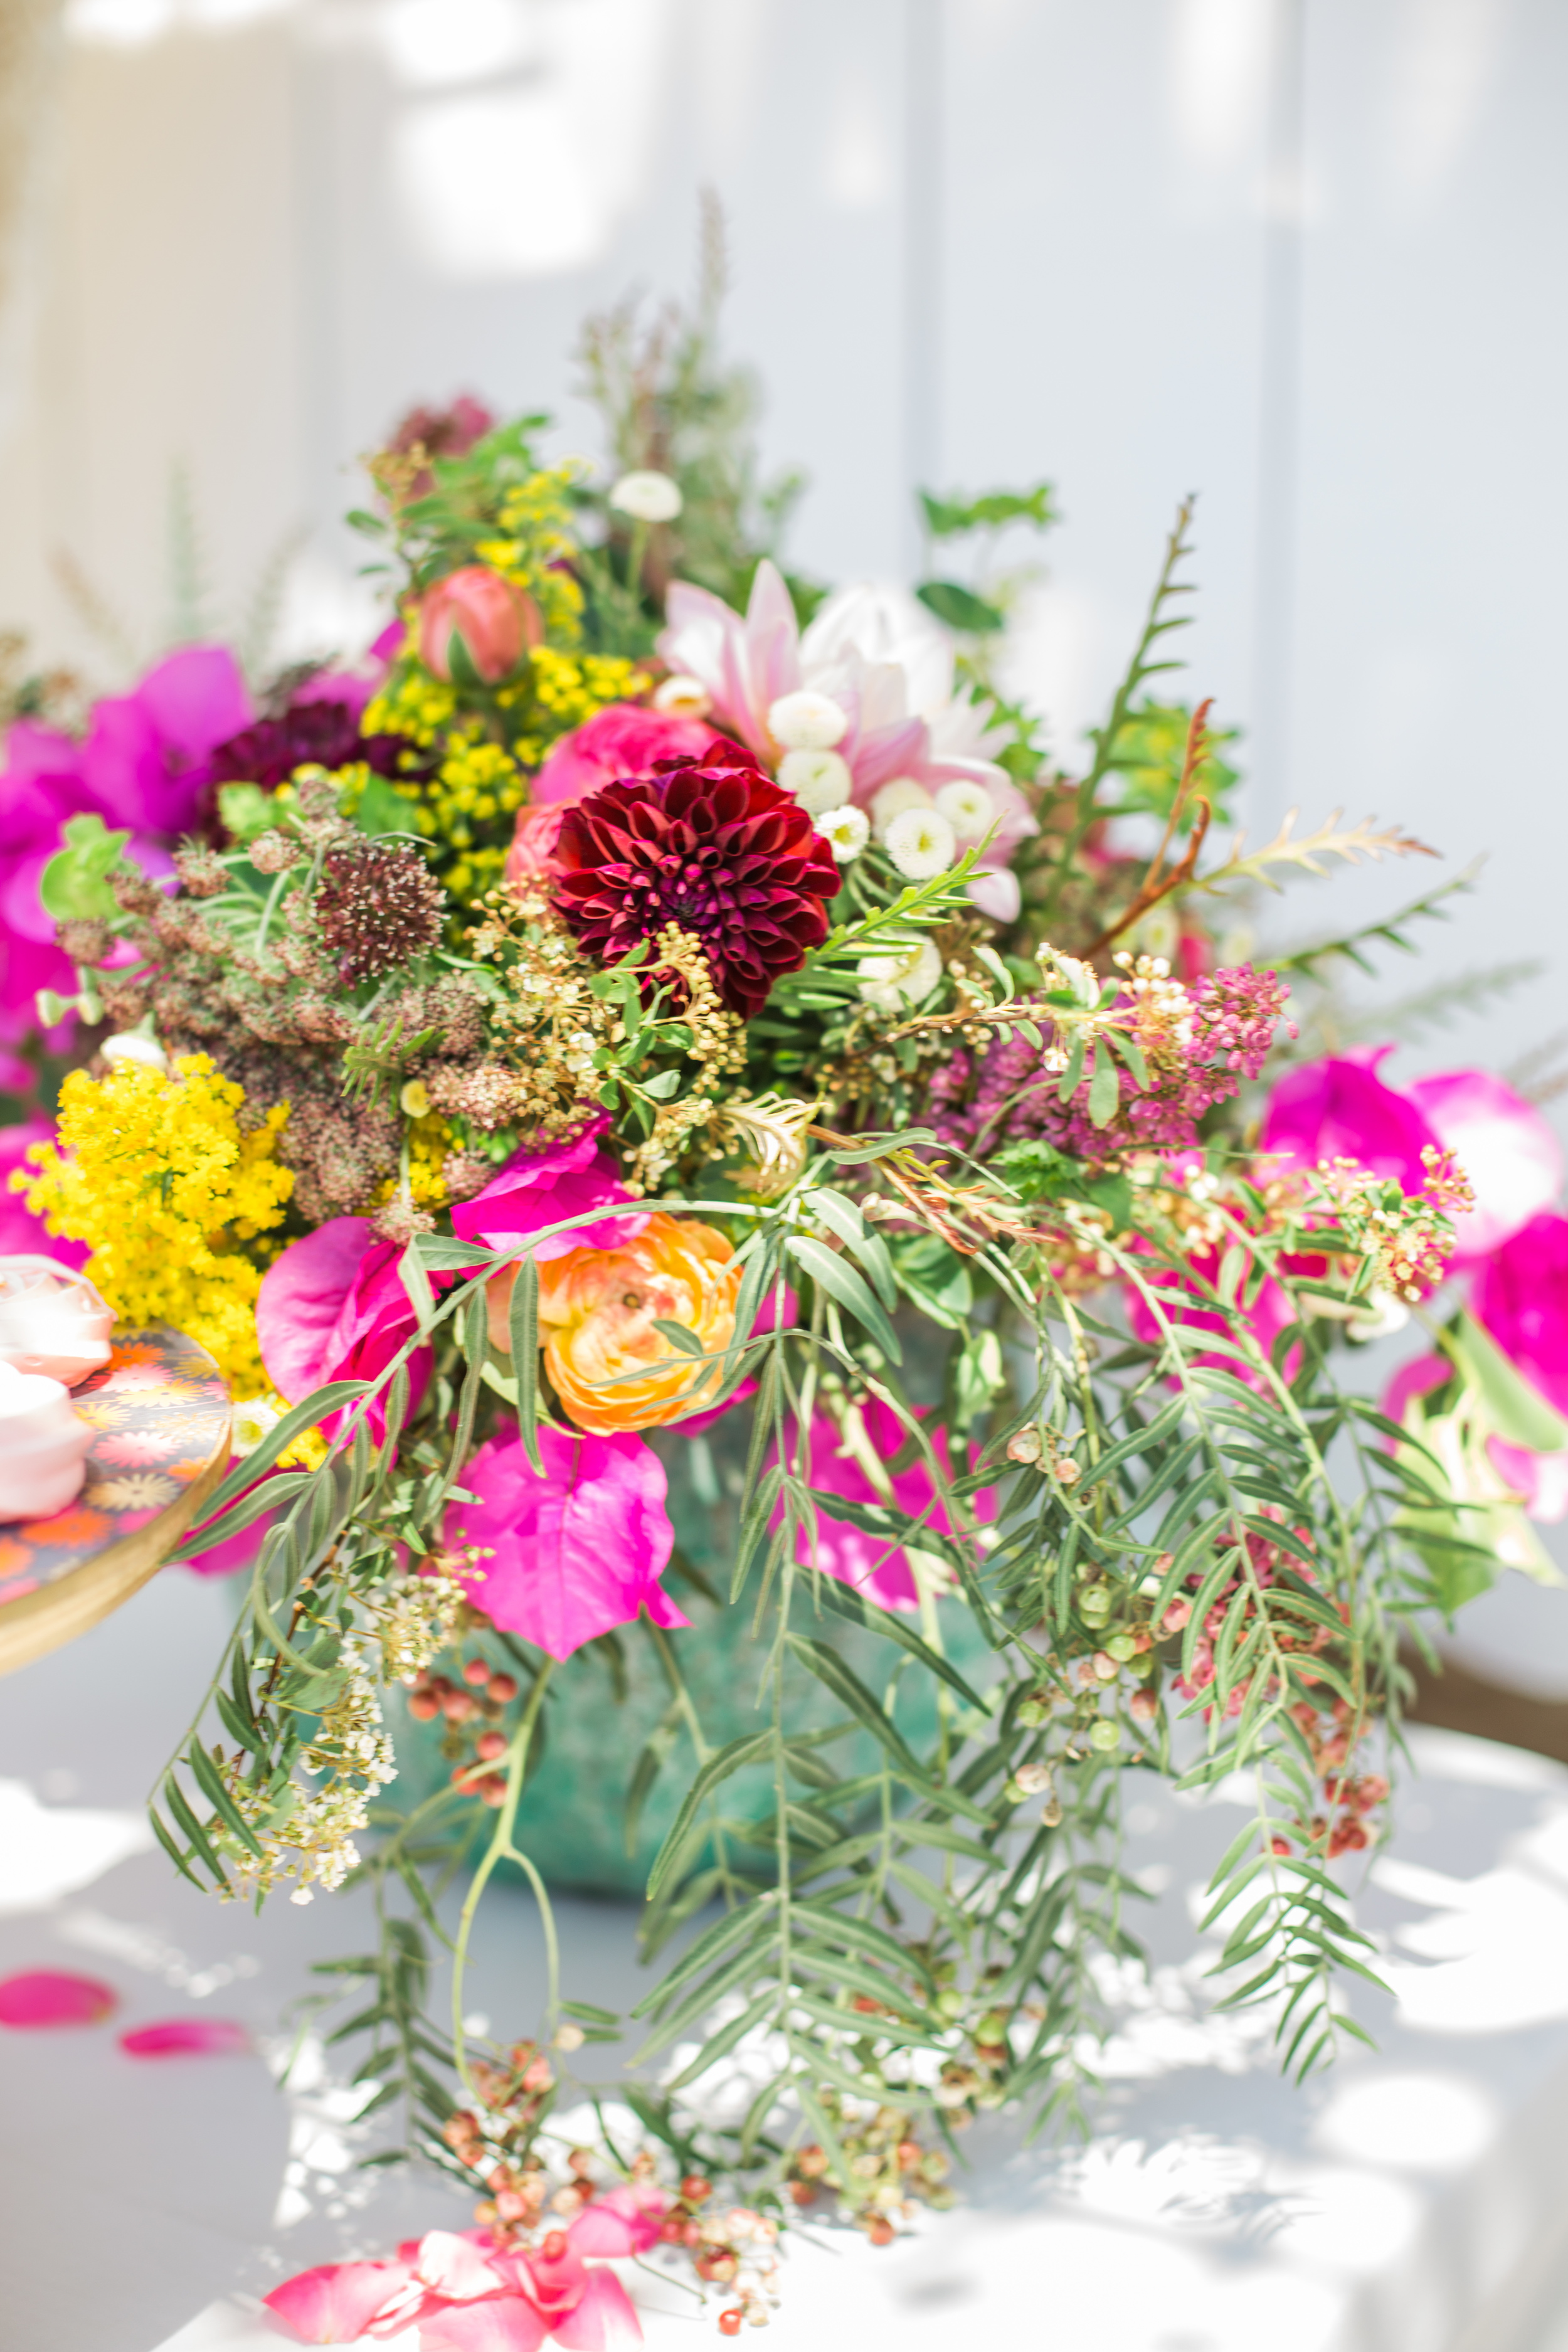 Bright and eclectic floral arrangement